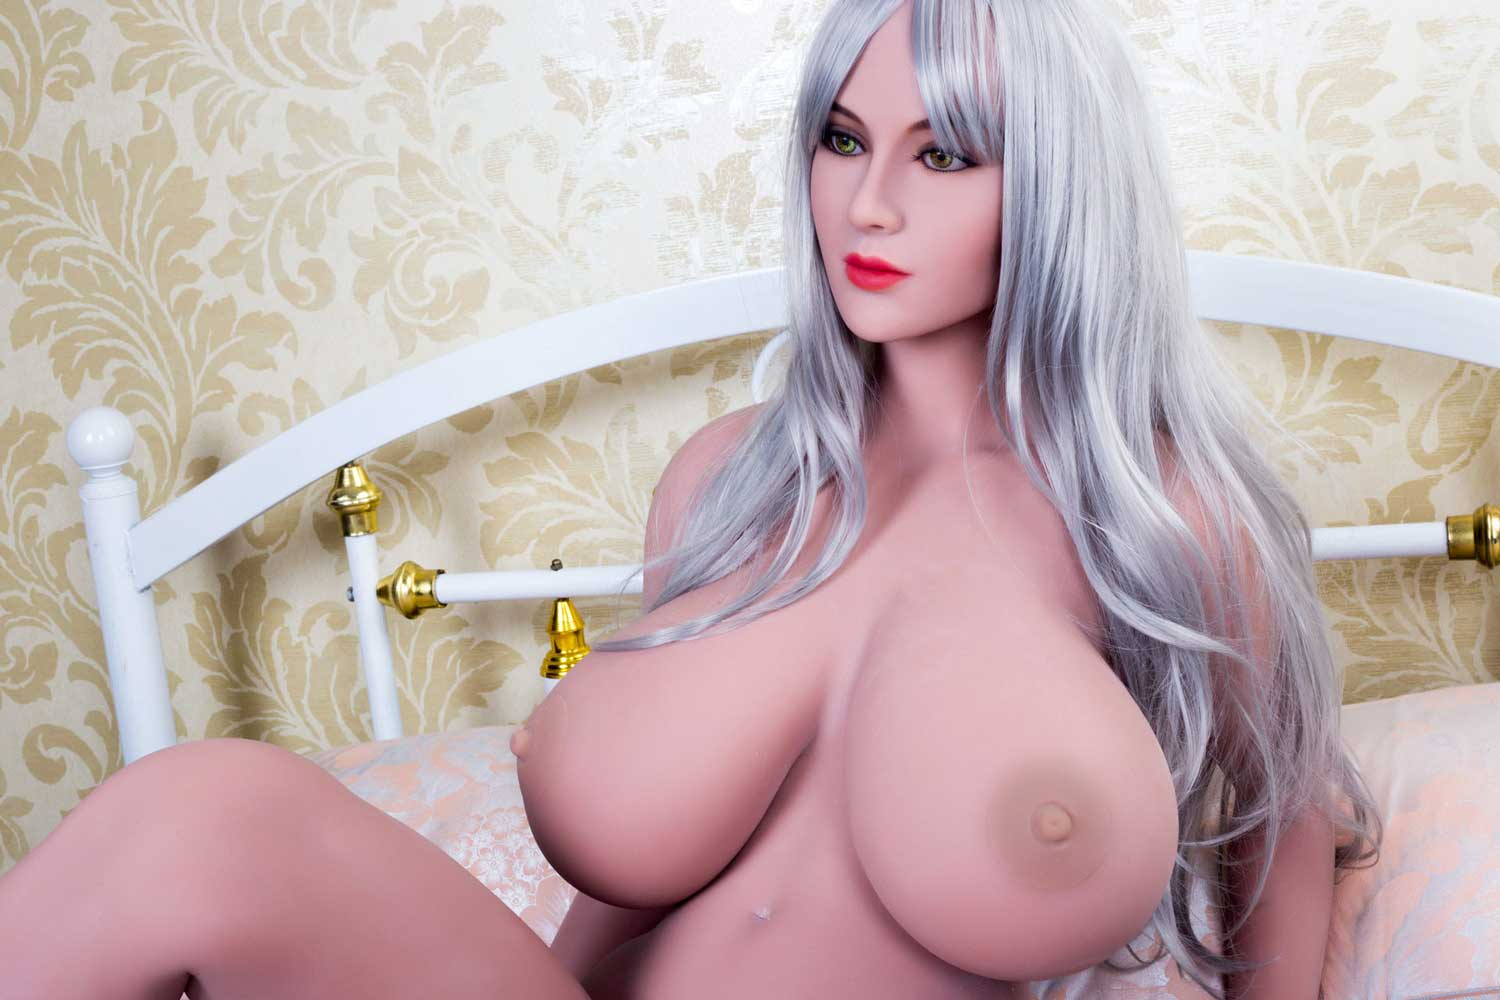 Gray long-haired sex doll